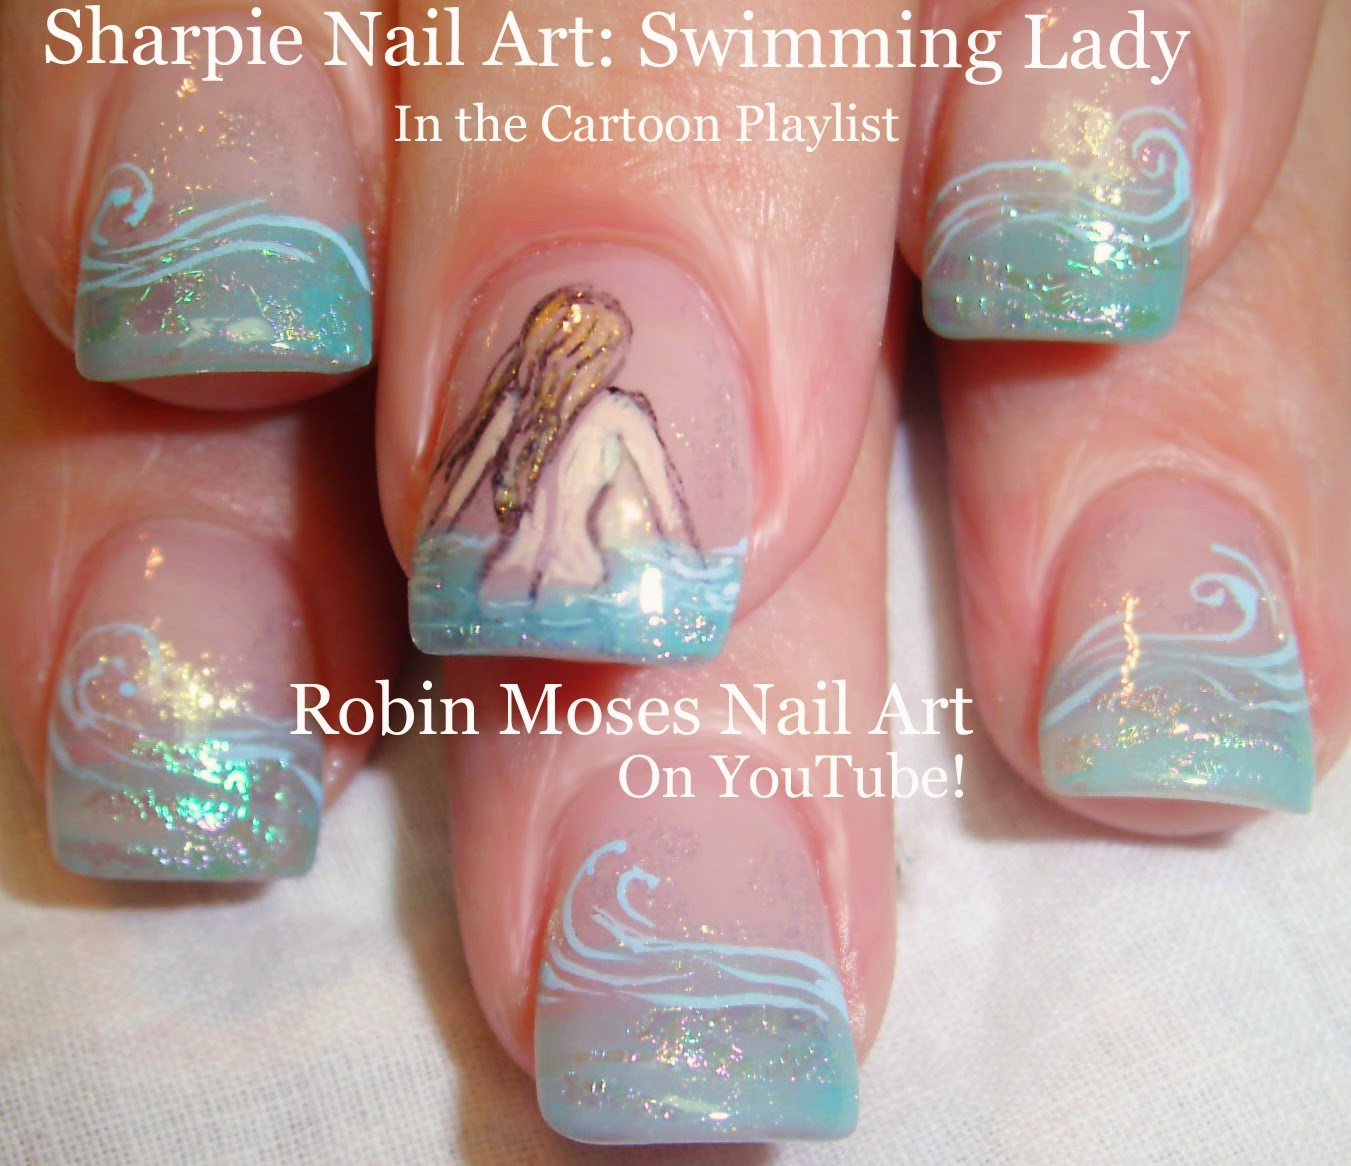 A Fun Nail Art Tutorial Up For My Birthday Suit Skinny Dipper Done With Sharpie Pens And Foil